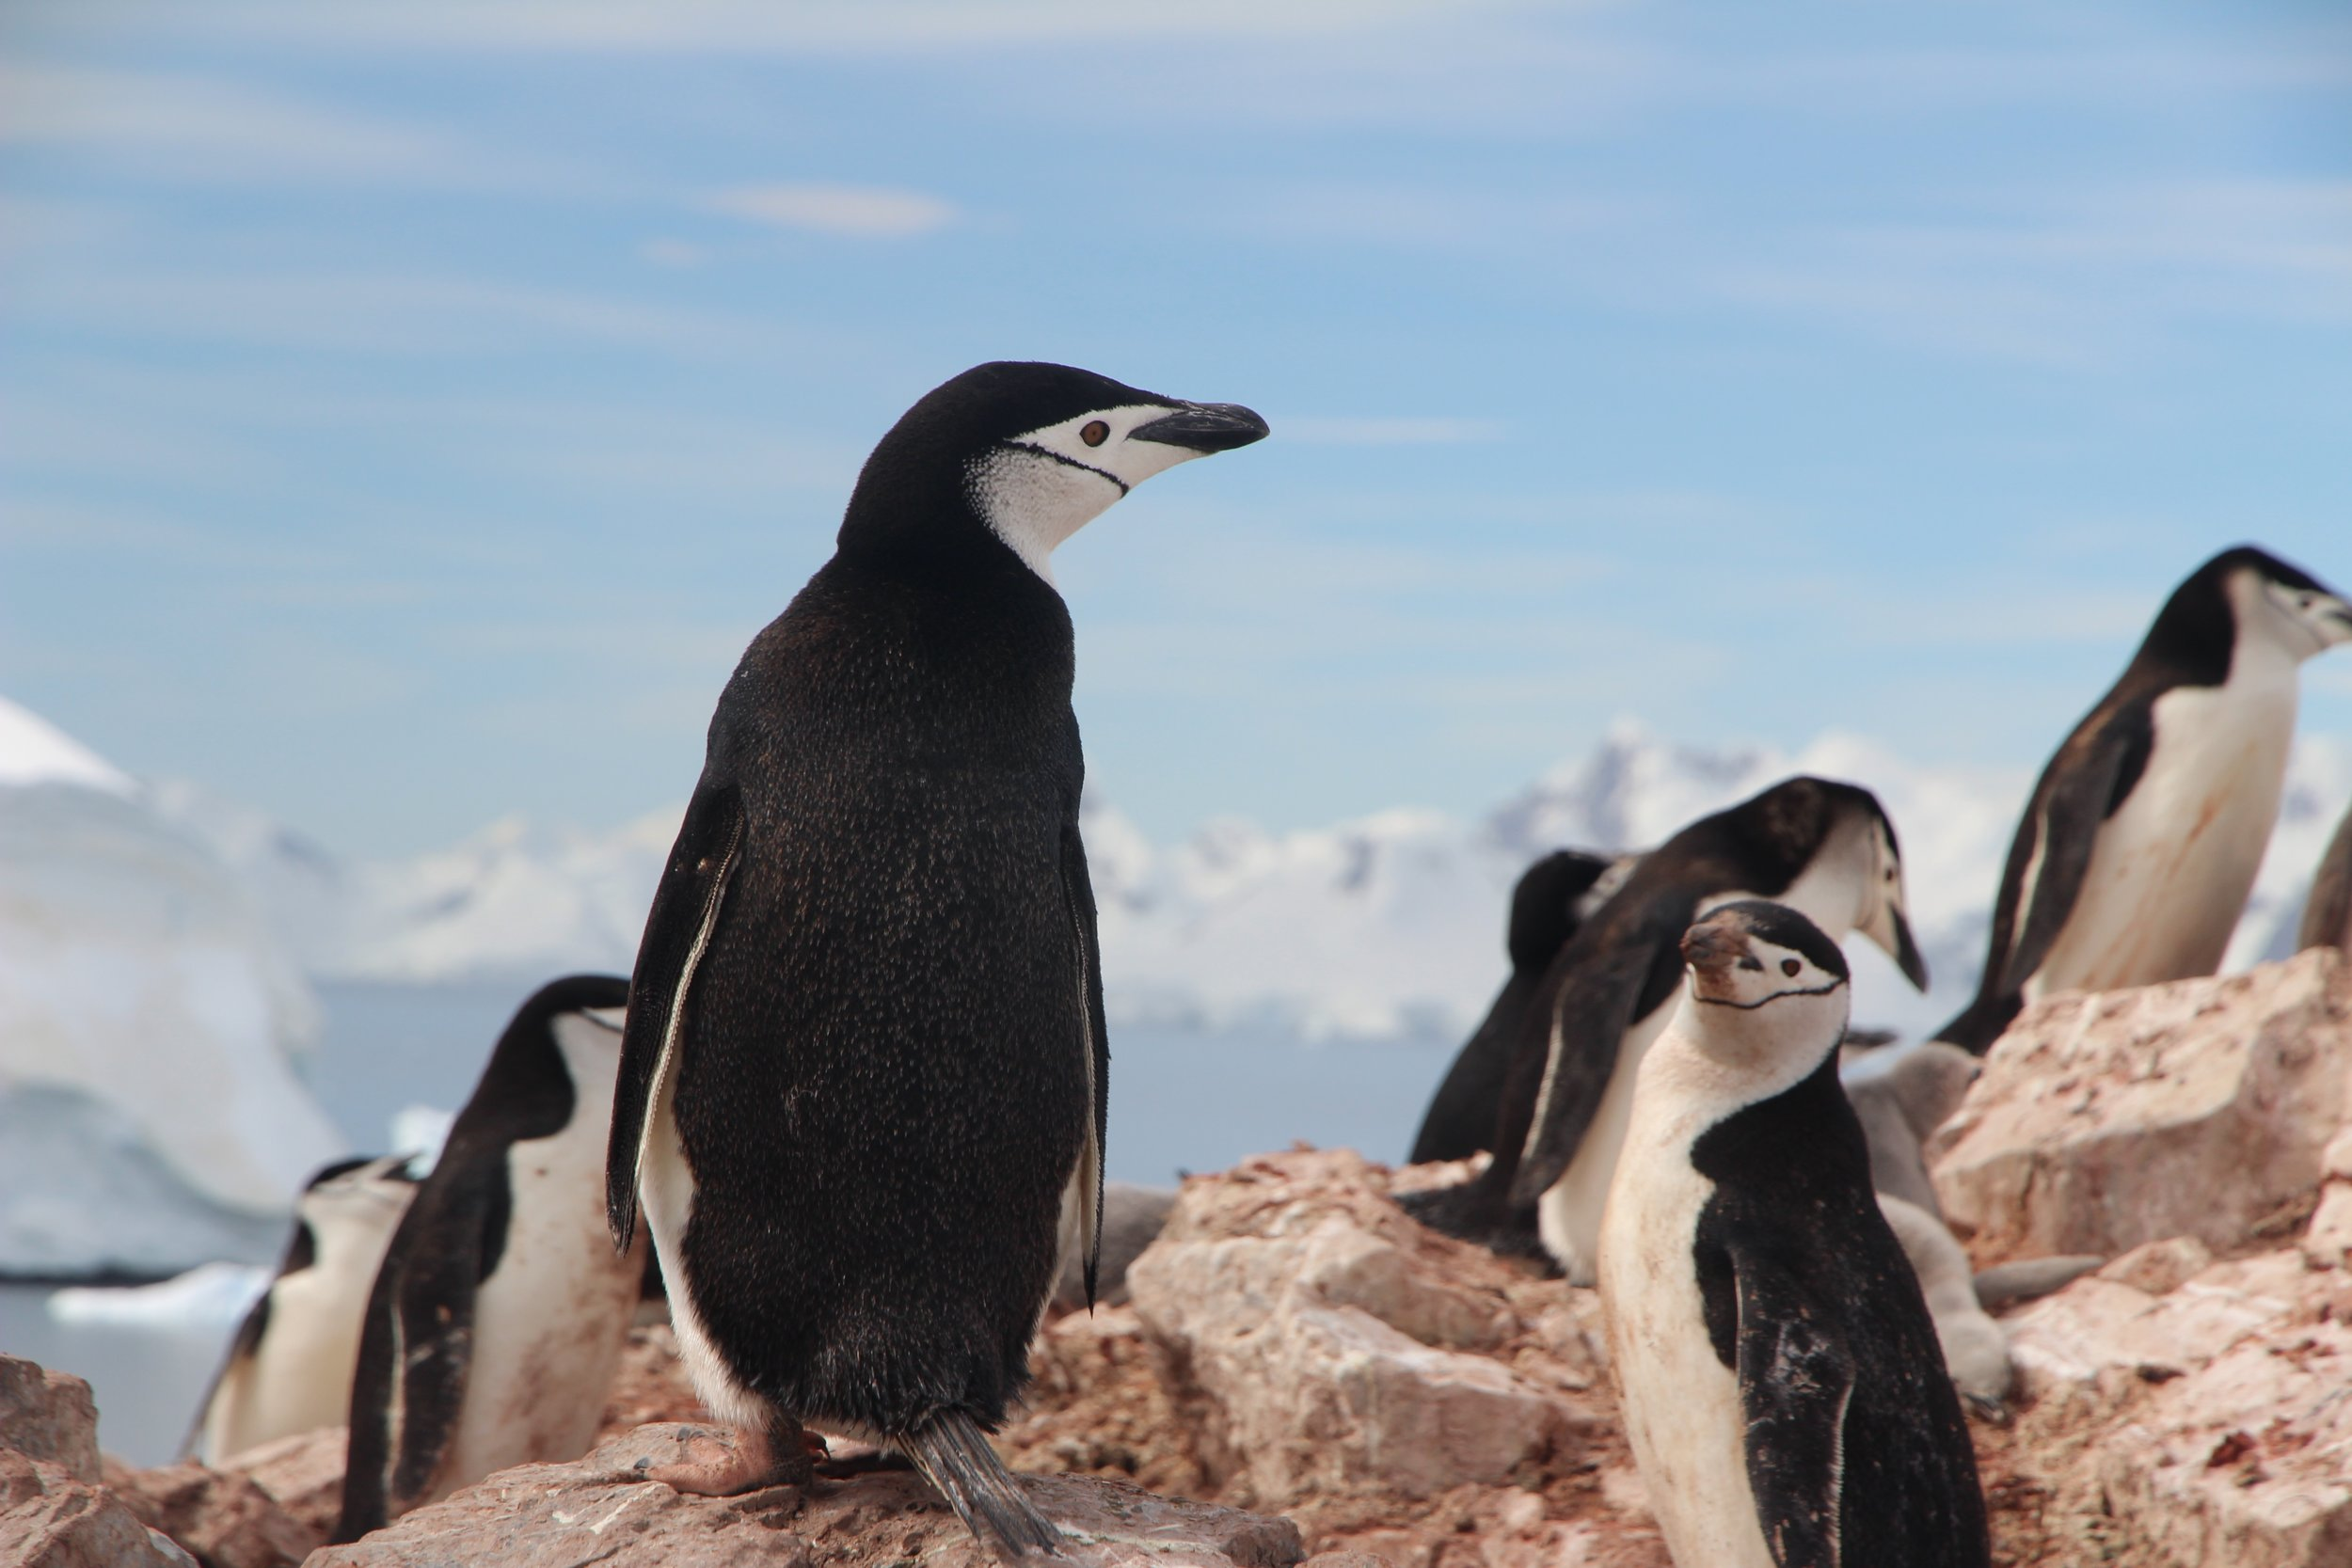 Penguins, seals, and whales are among the wildlife you're likely to encounter in Antarctica (Image: Eamonn Maguire,  Unsplash )